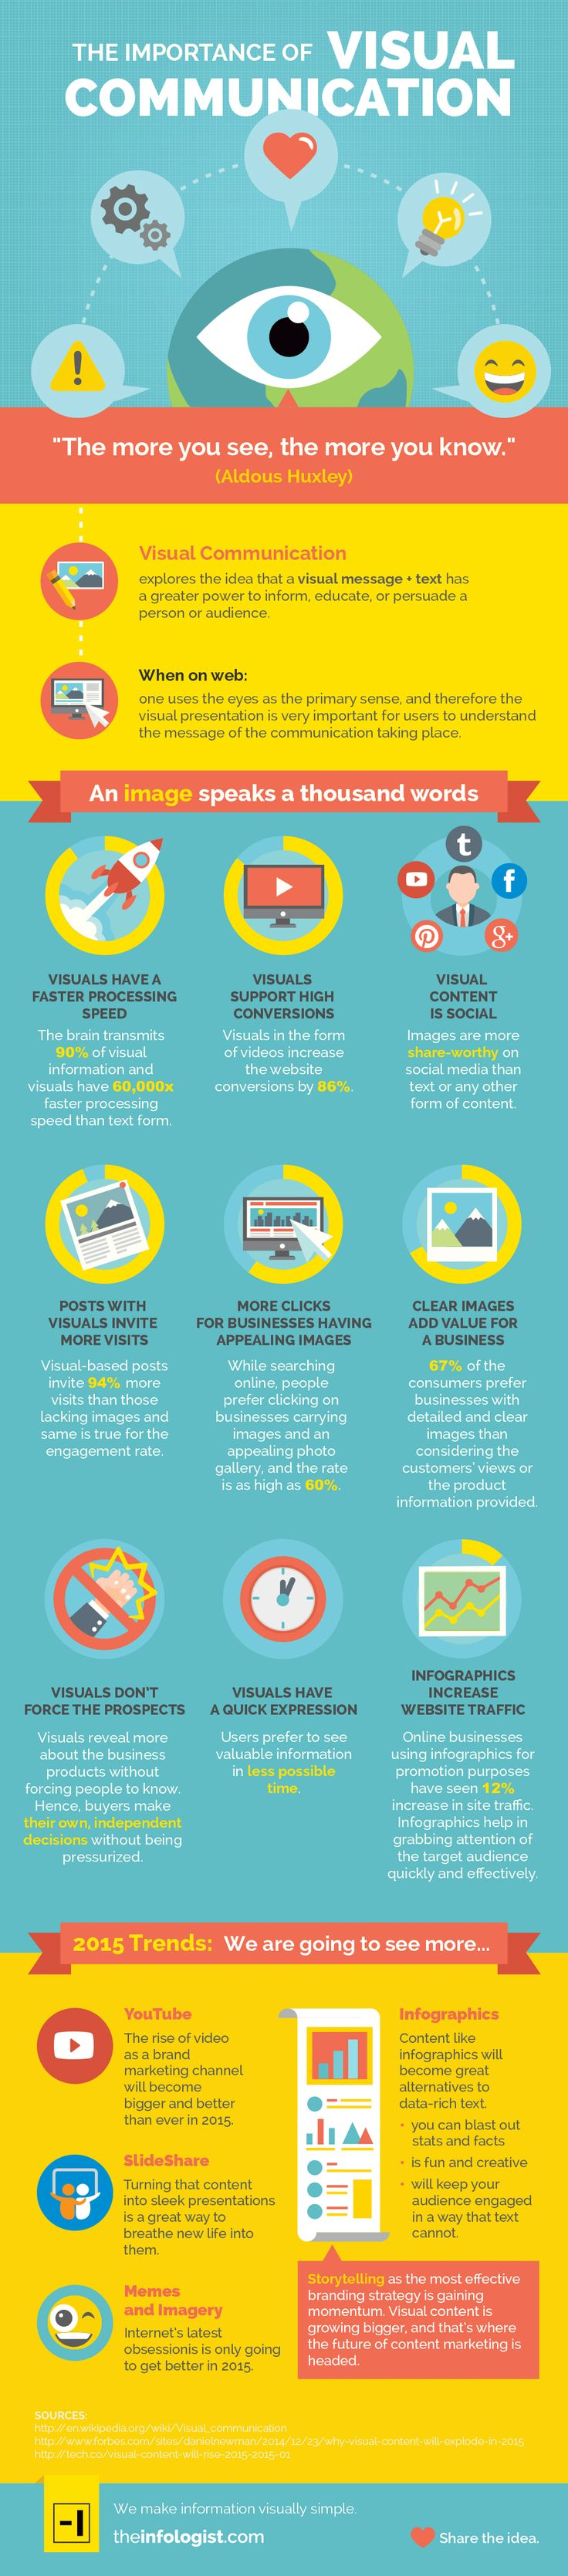 Infographics: the power of visual storytelling pdf viewer